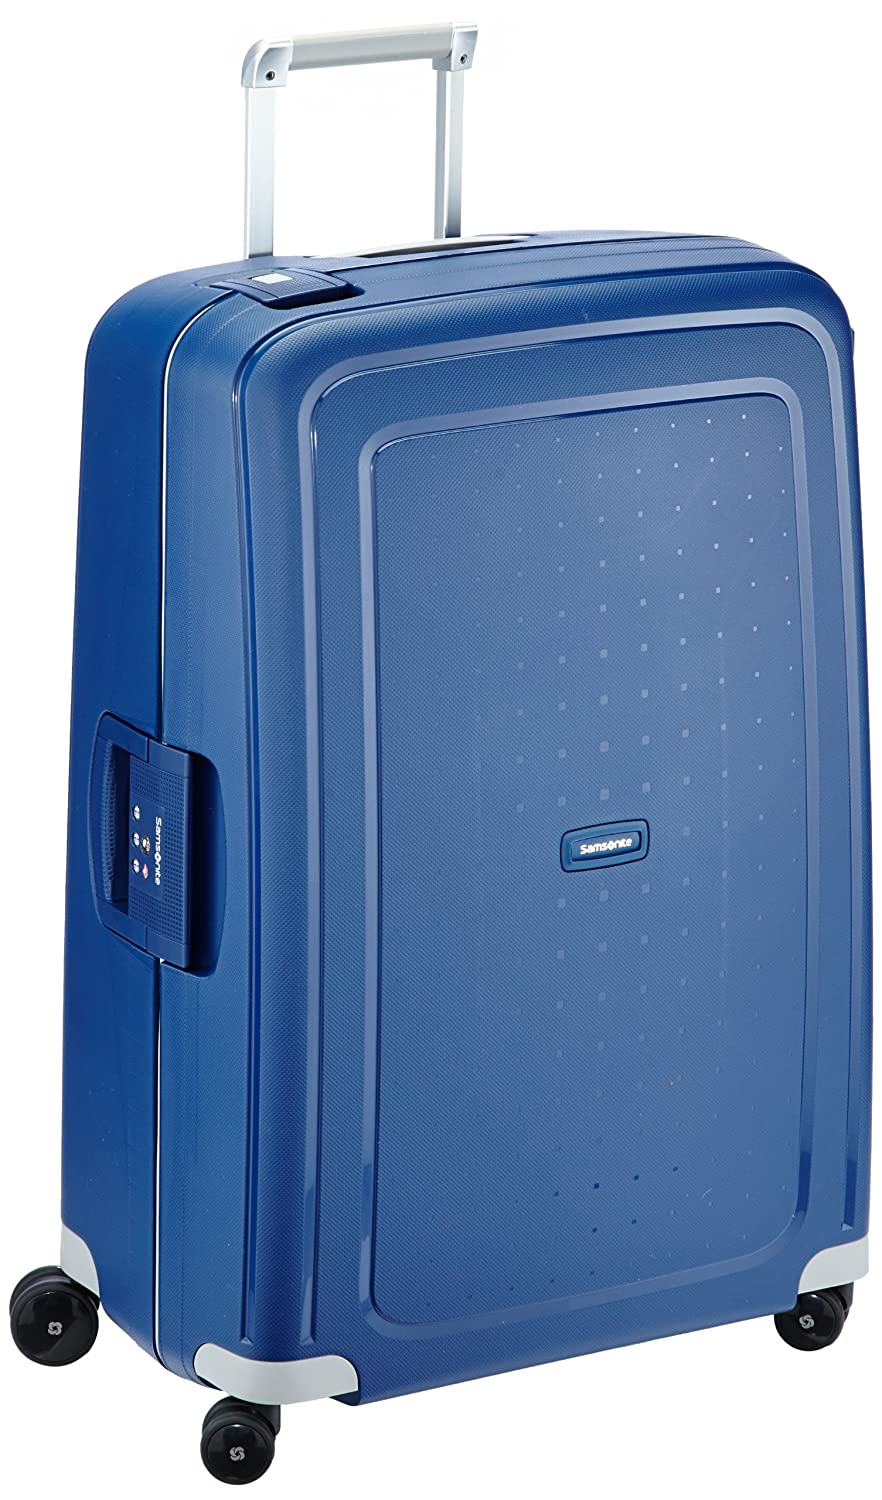 samsonite suitcase 75 cm 102 liters dark blue ebay. Black Bedroom Furniture Sets. Home Design Ideas